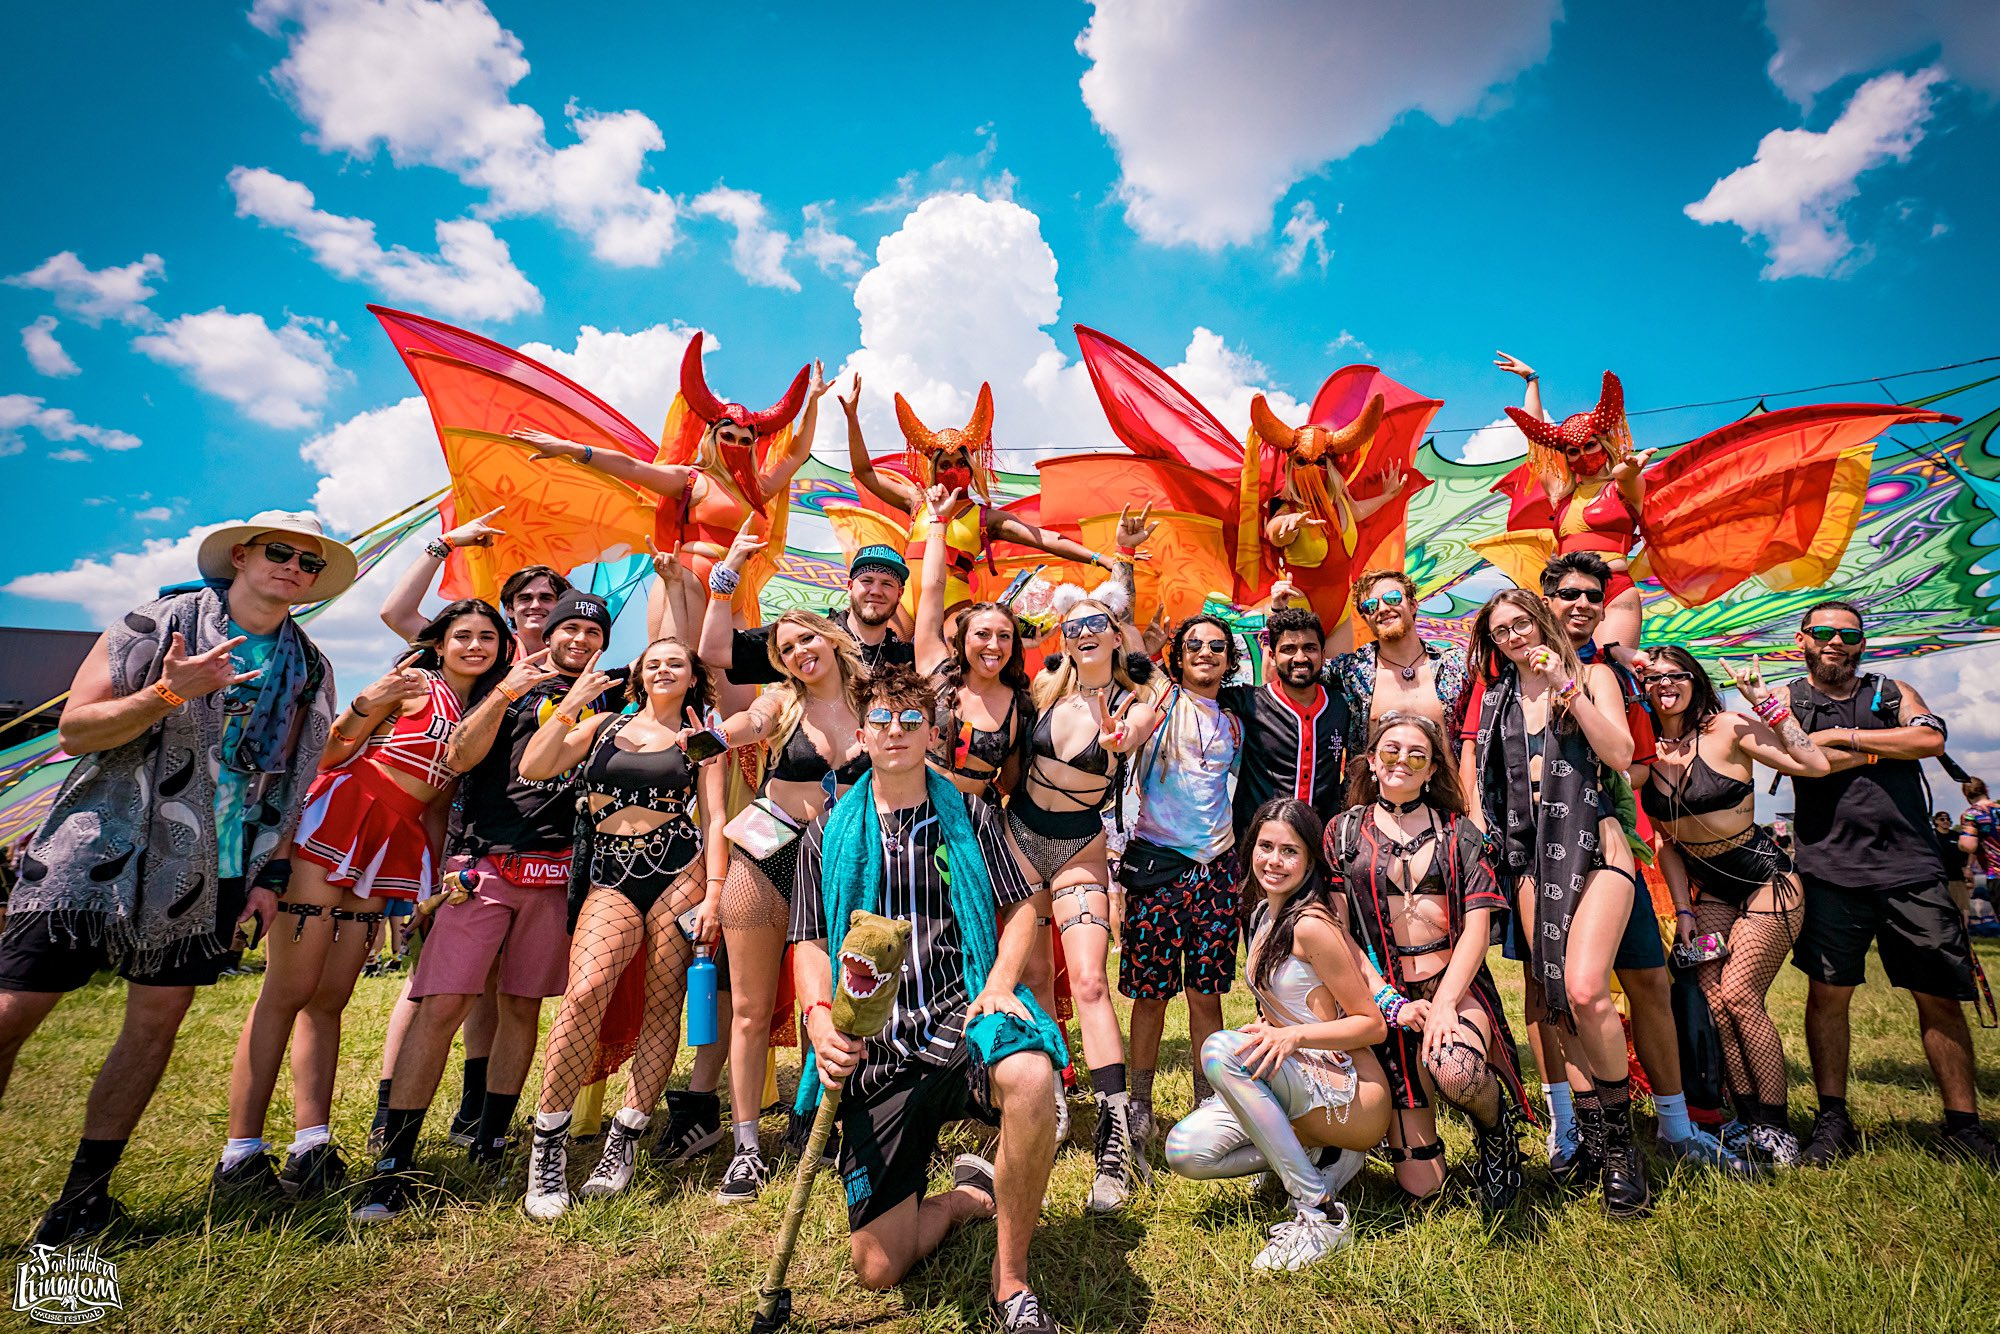 A group of festival-goers gather together to take a picture.